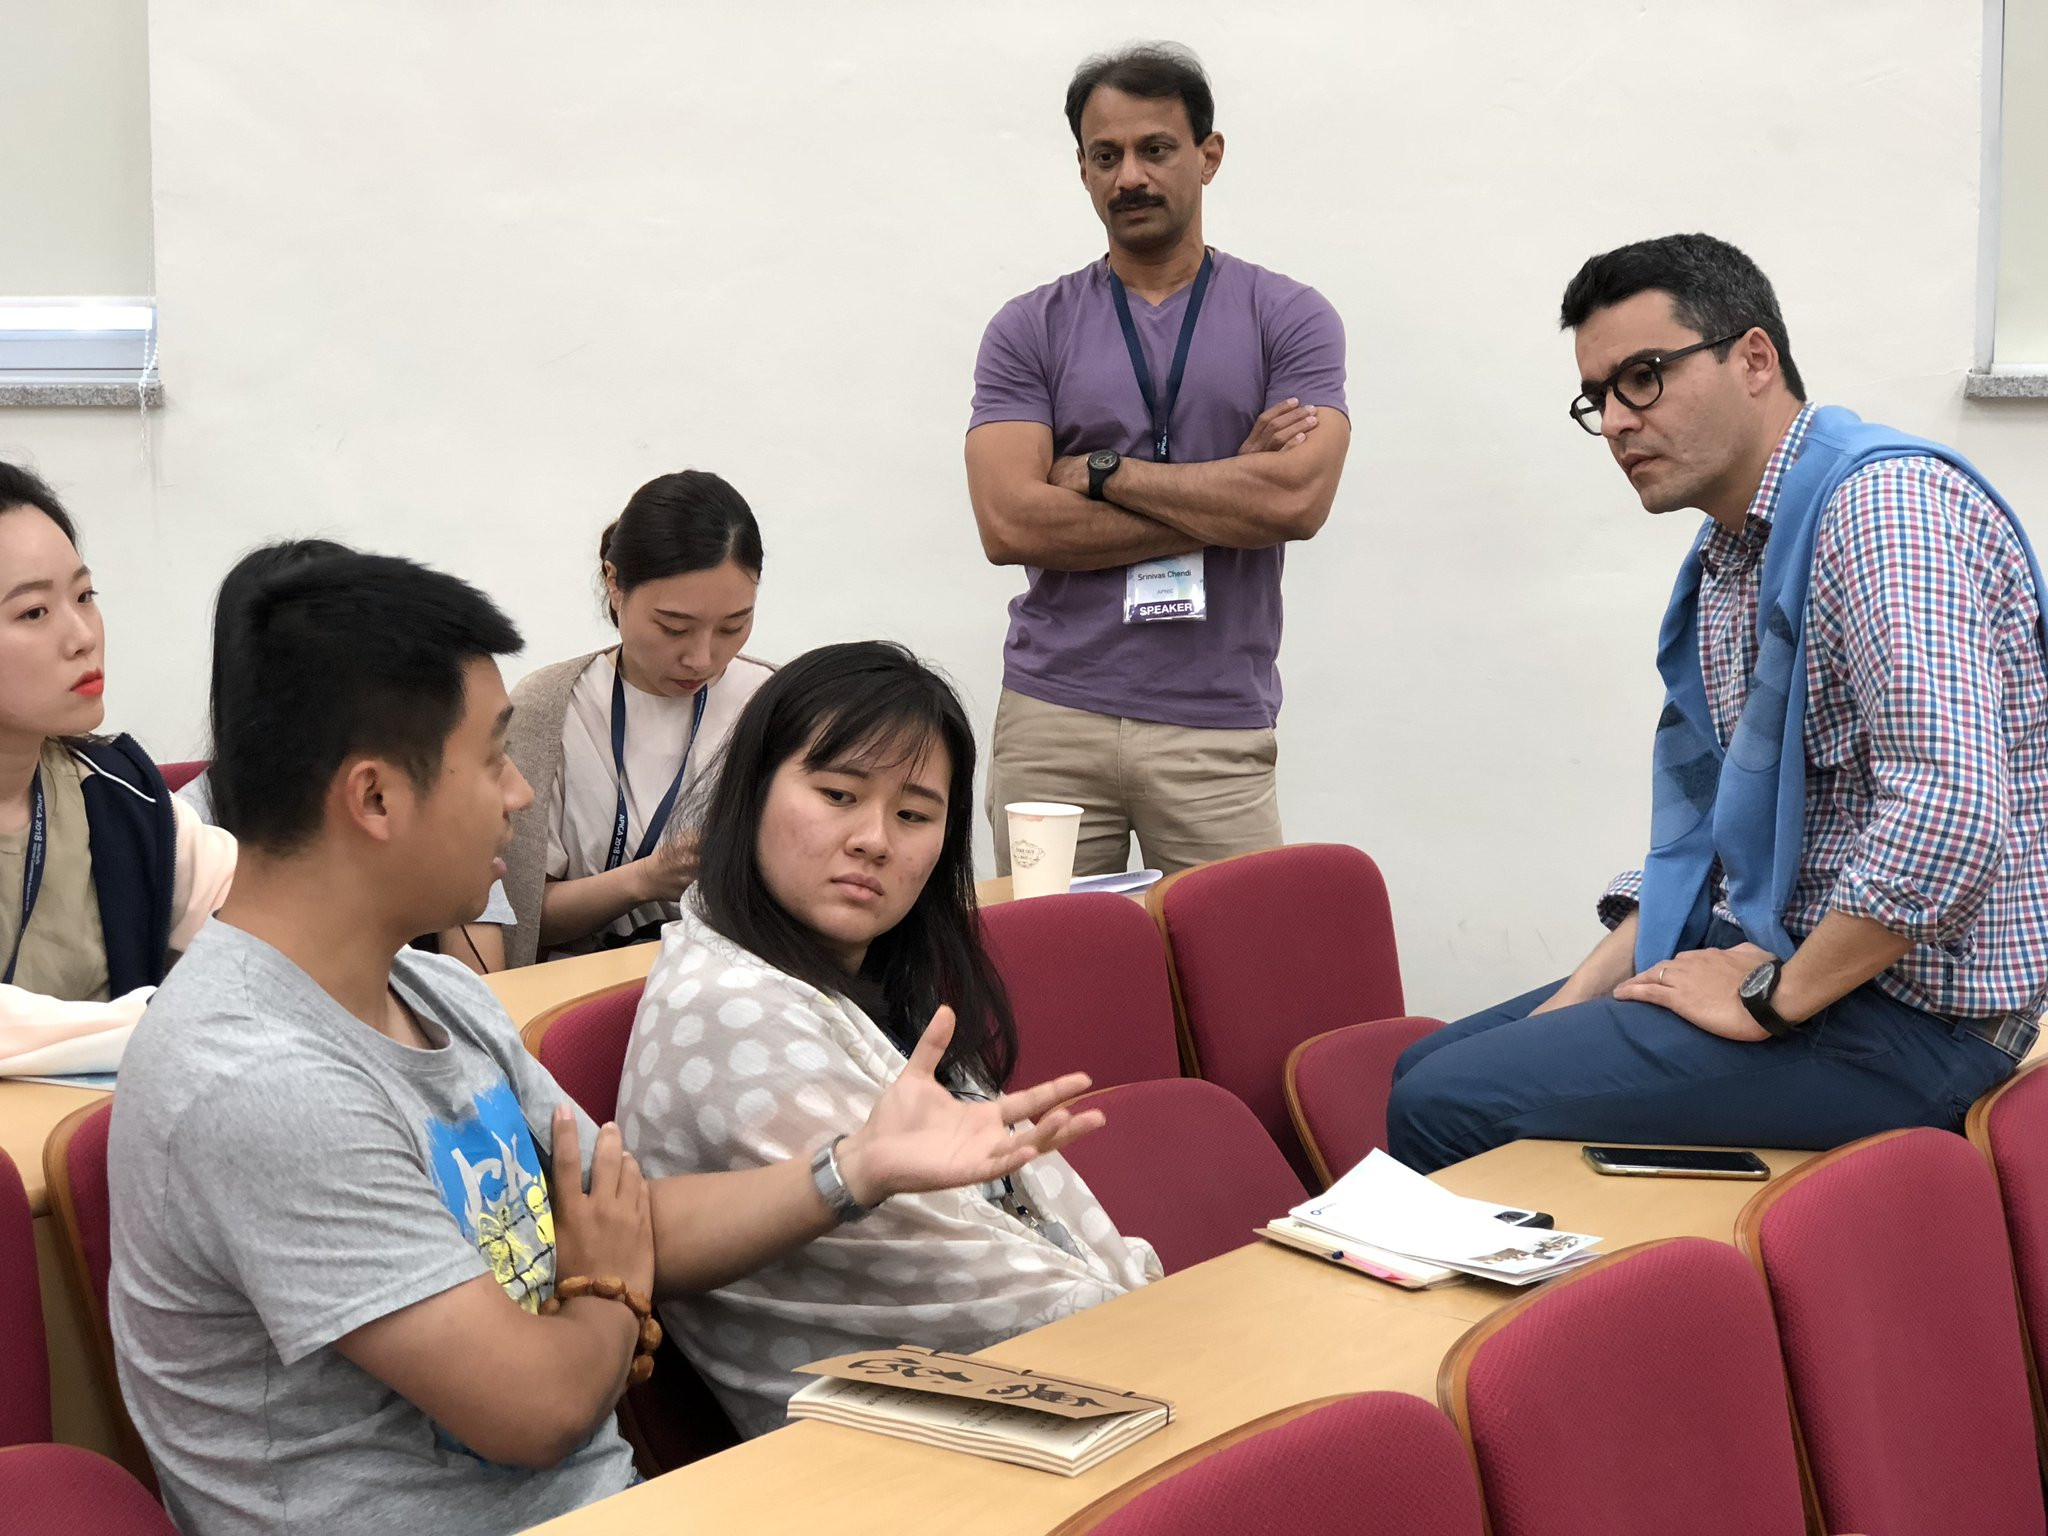 APNIC's Pablo Hinojosa (right) and Sunny Chendi (centre) discussing APNIC's role in the Internet ecosystem with the next generation of technical community leaders.